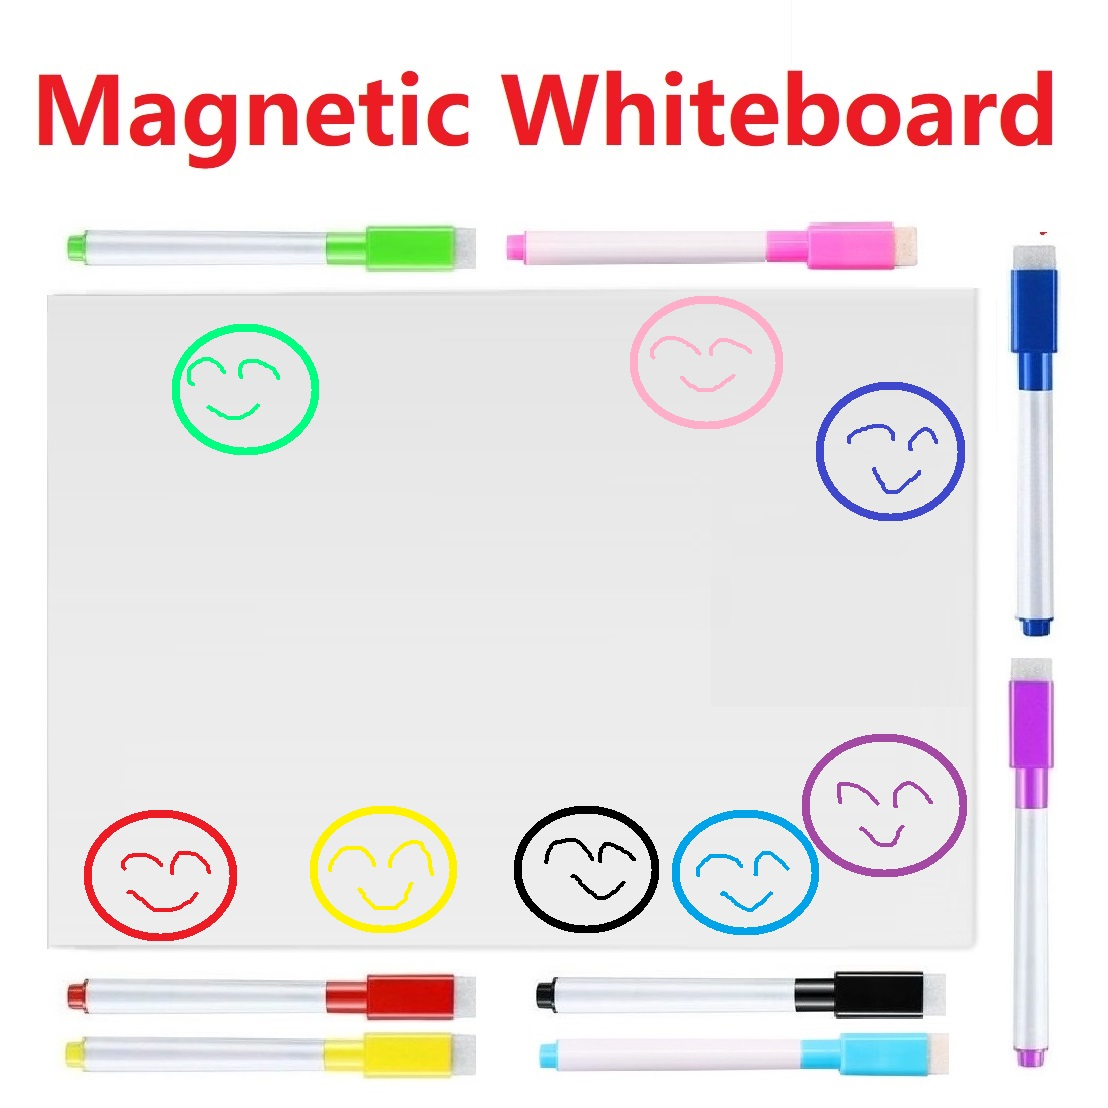 Magnetic White Board For Fridge Refrigerator Magnets White Board Markers Eraser Magnet Board Memo Boards Whiteboard For Kids